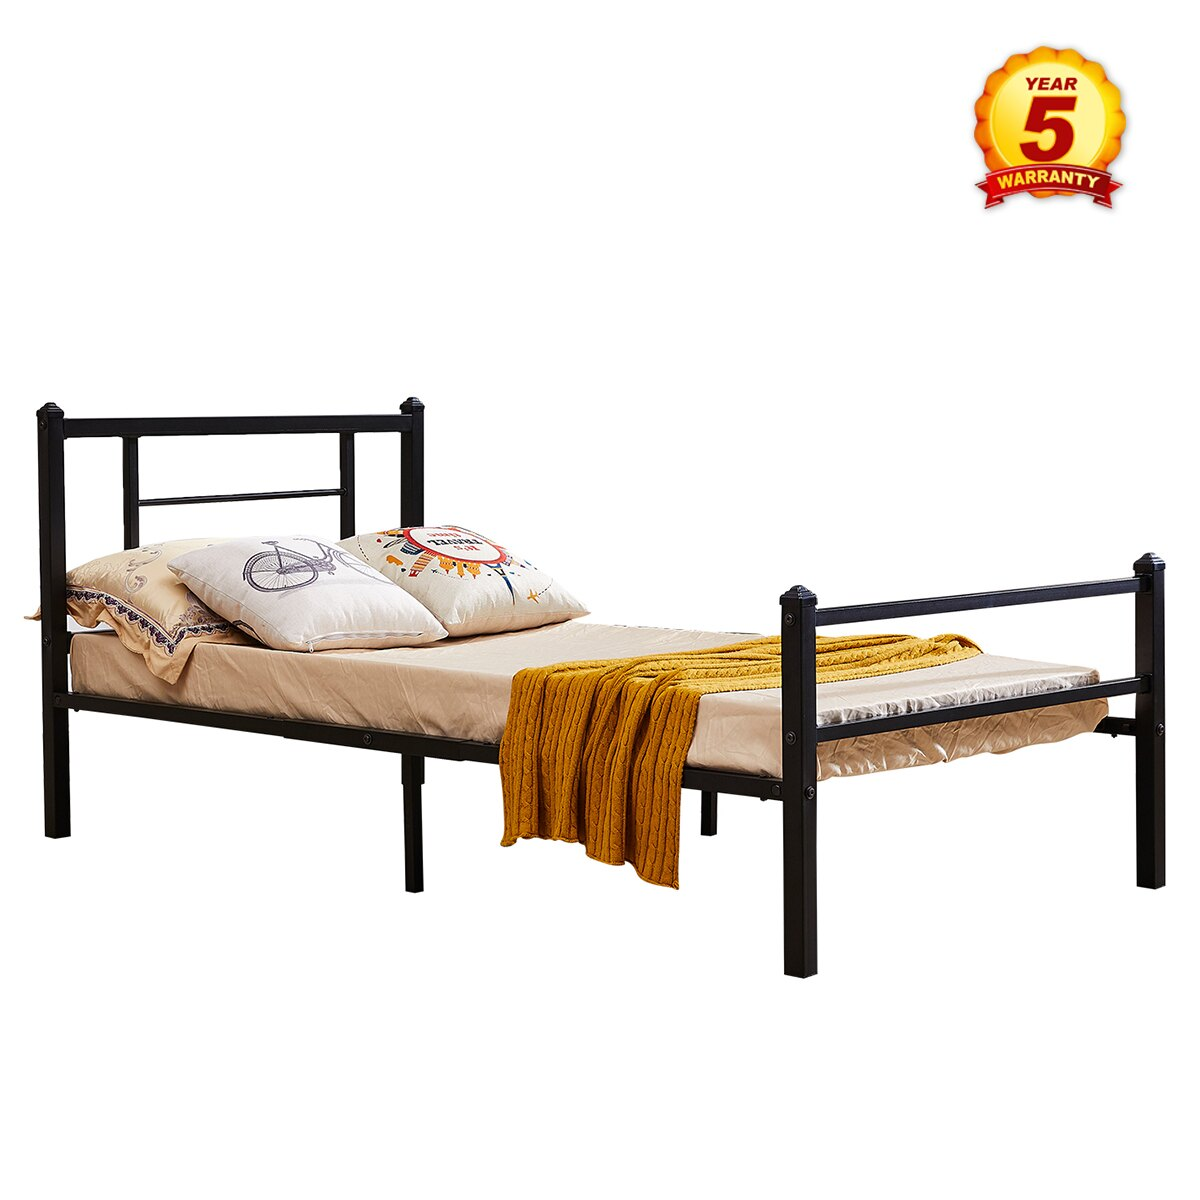 Mcombo Mcombo Metal Bed Frame With Headboard And Footboard Xl Twin